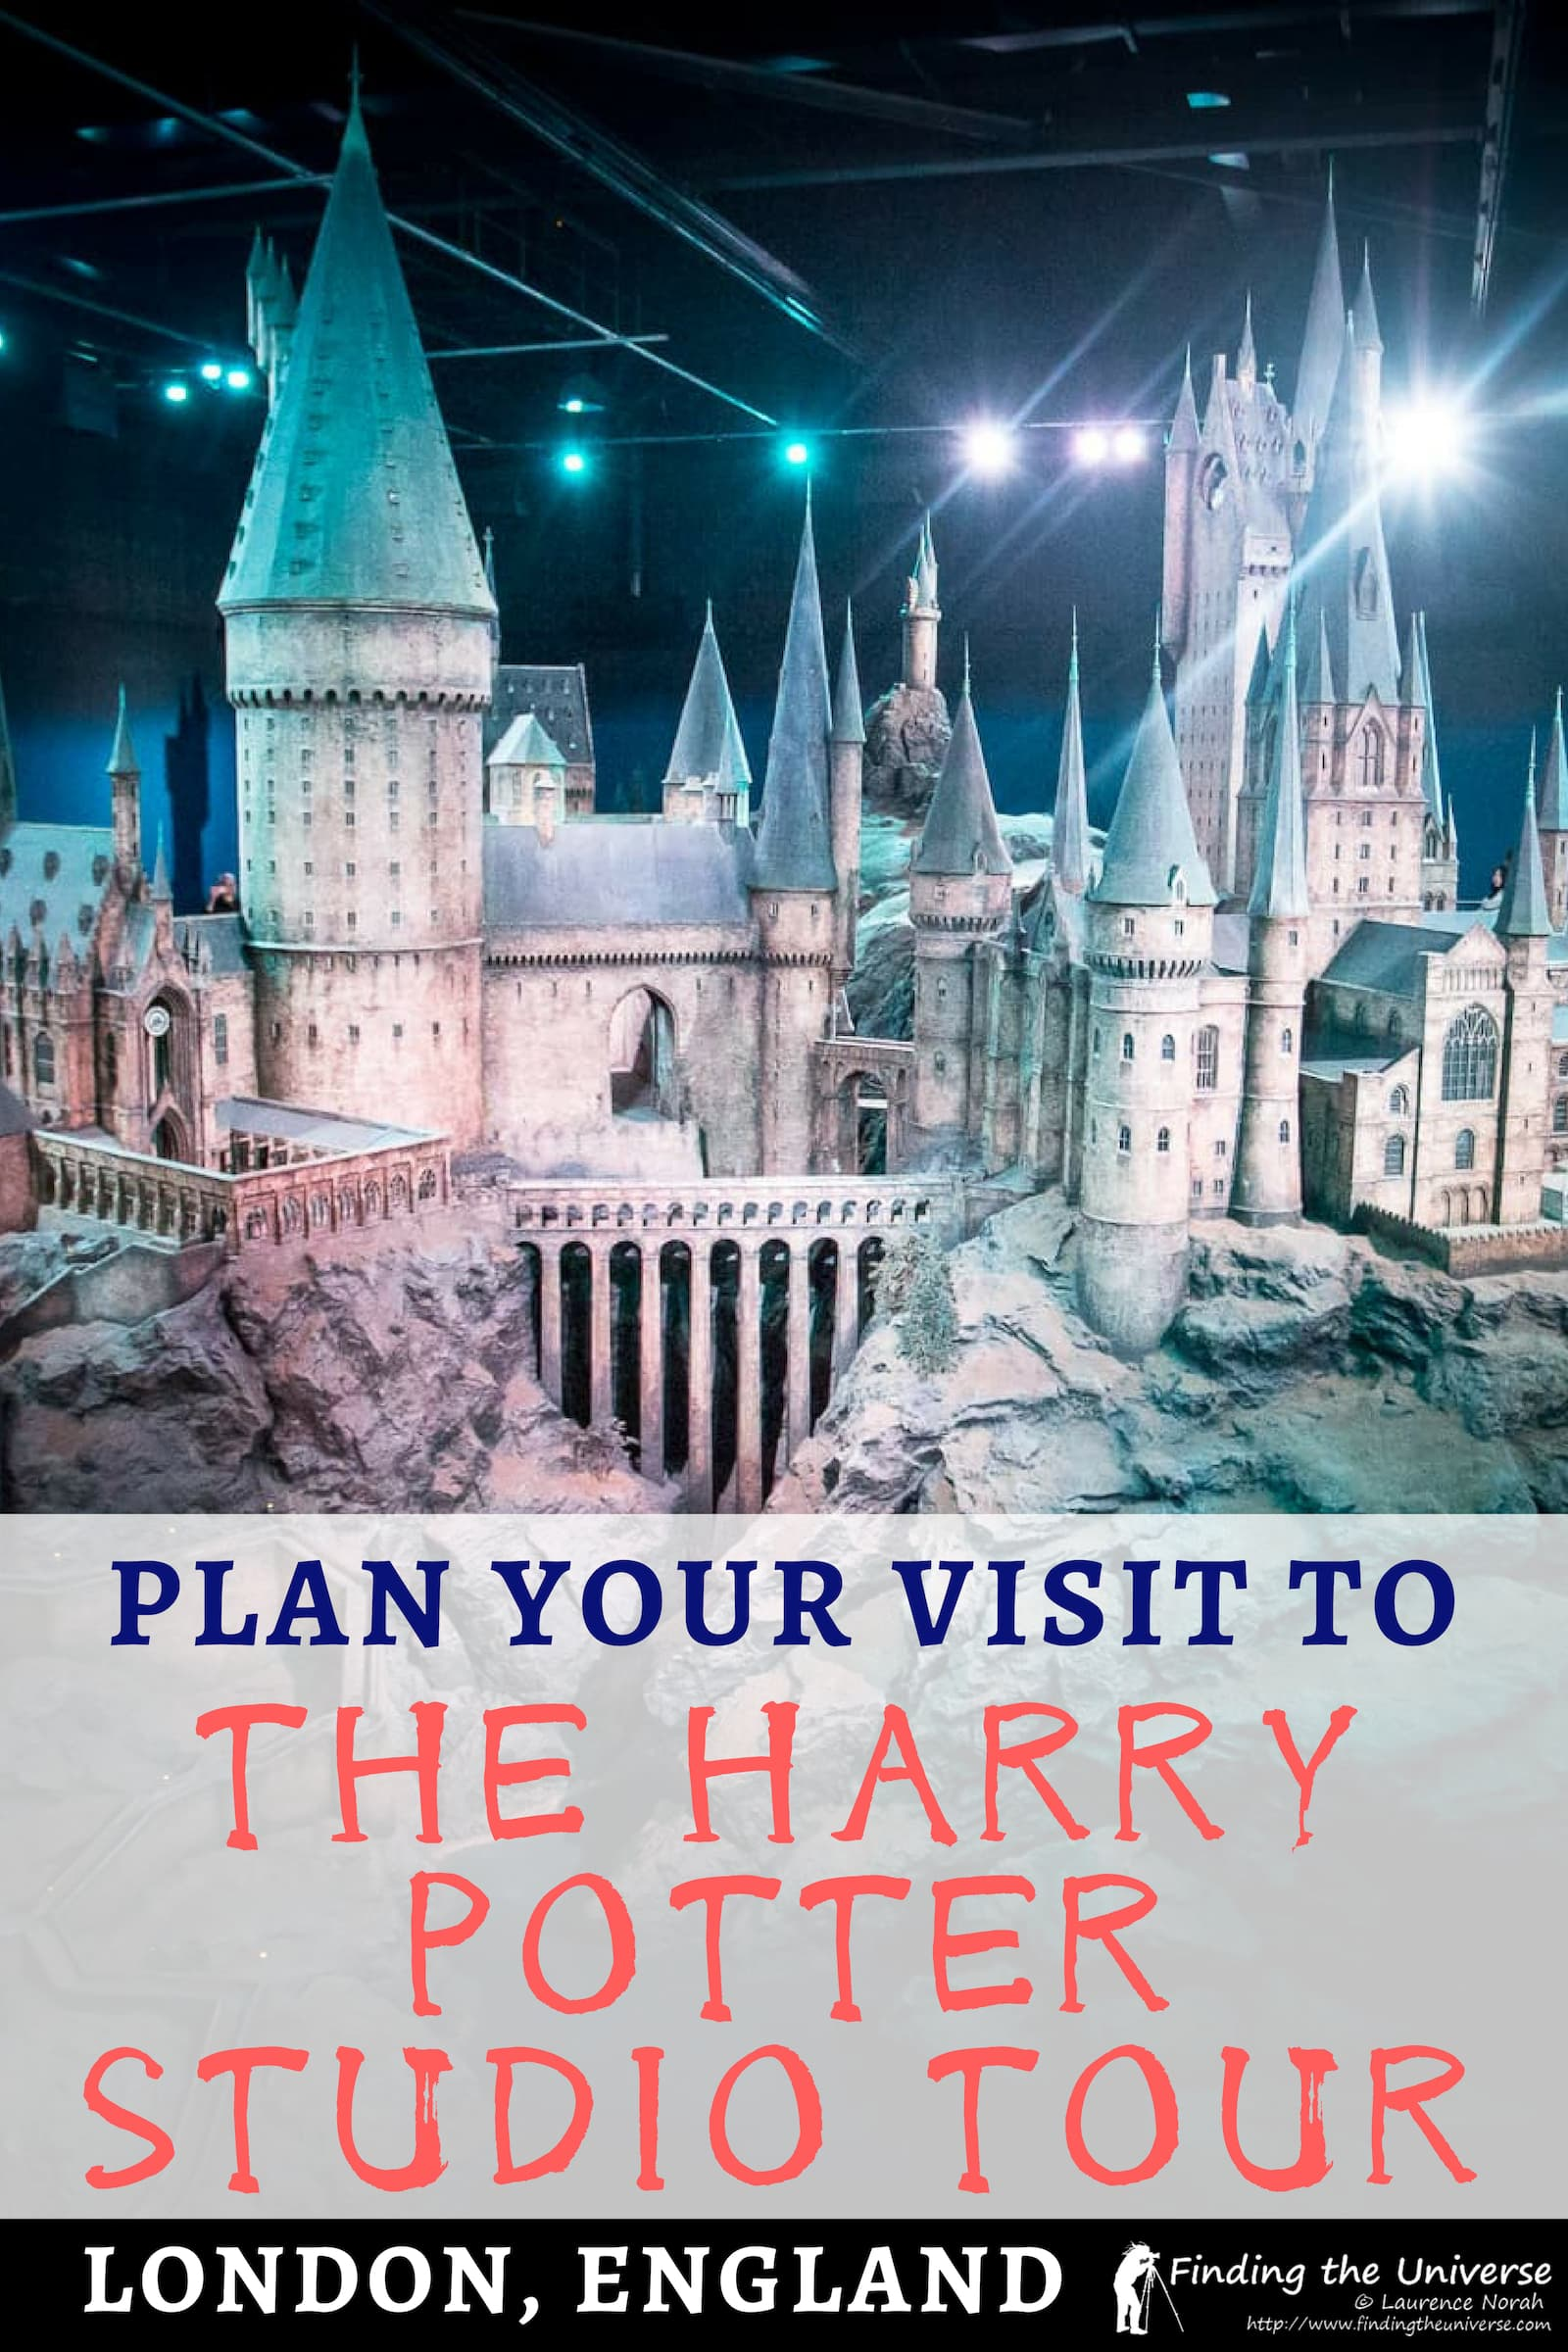 A detailed guide to taking a Harry Potter Studio tour, including how to get tickets, how to get to the Harry Potter studios from London, tour options, and tips!